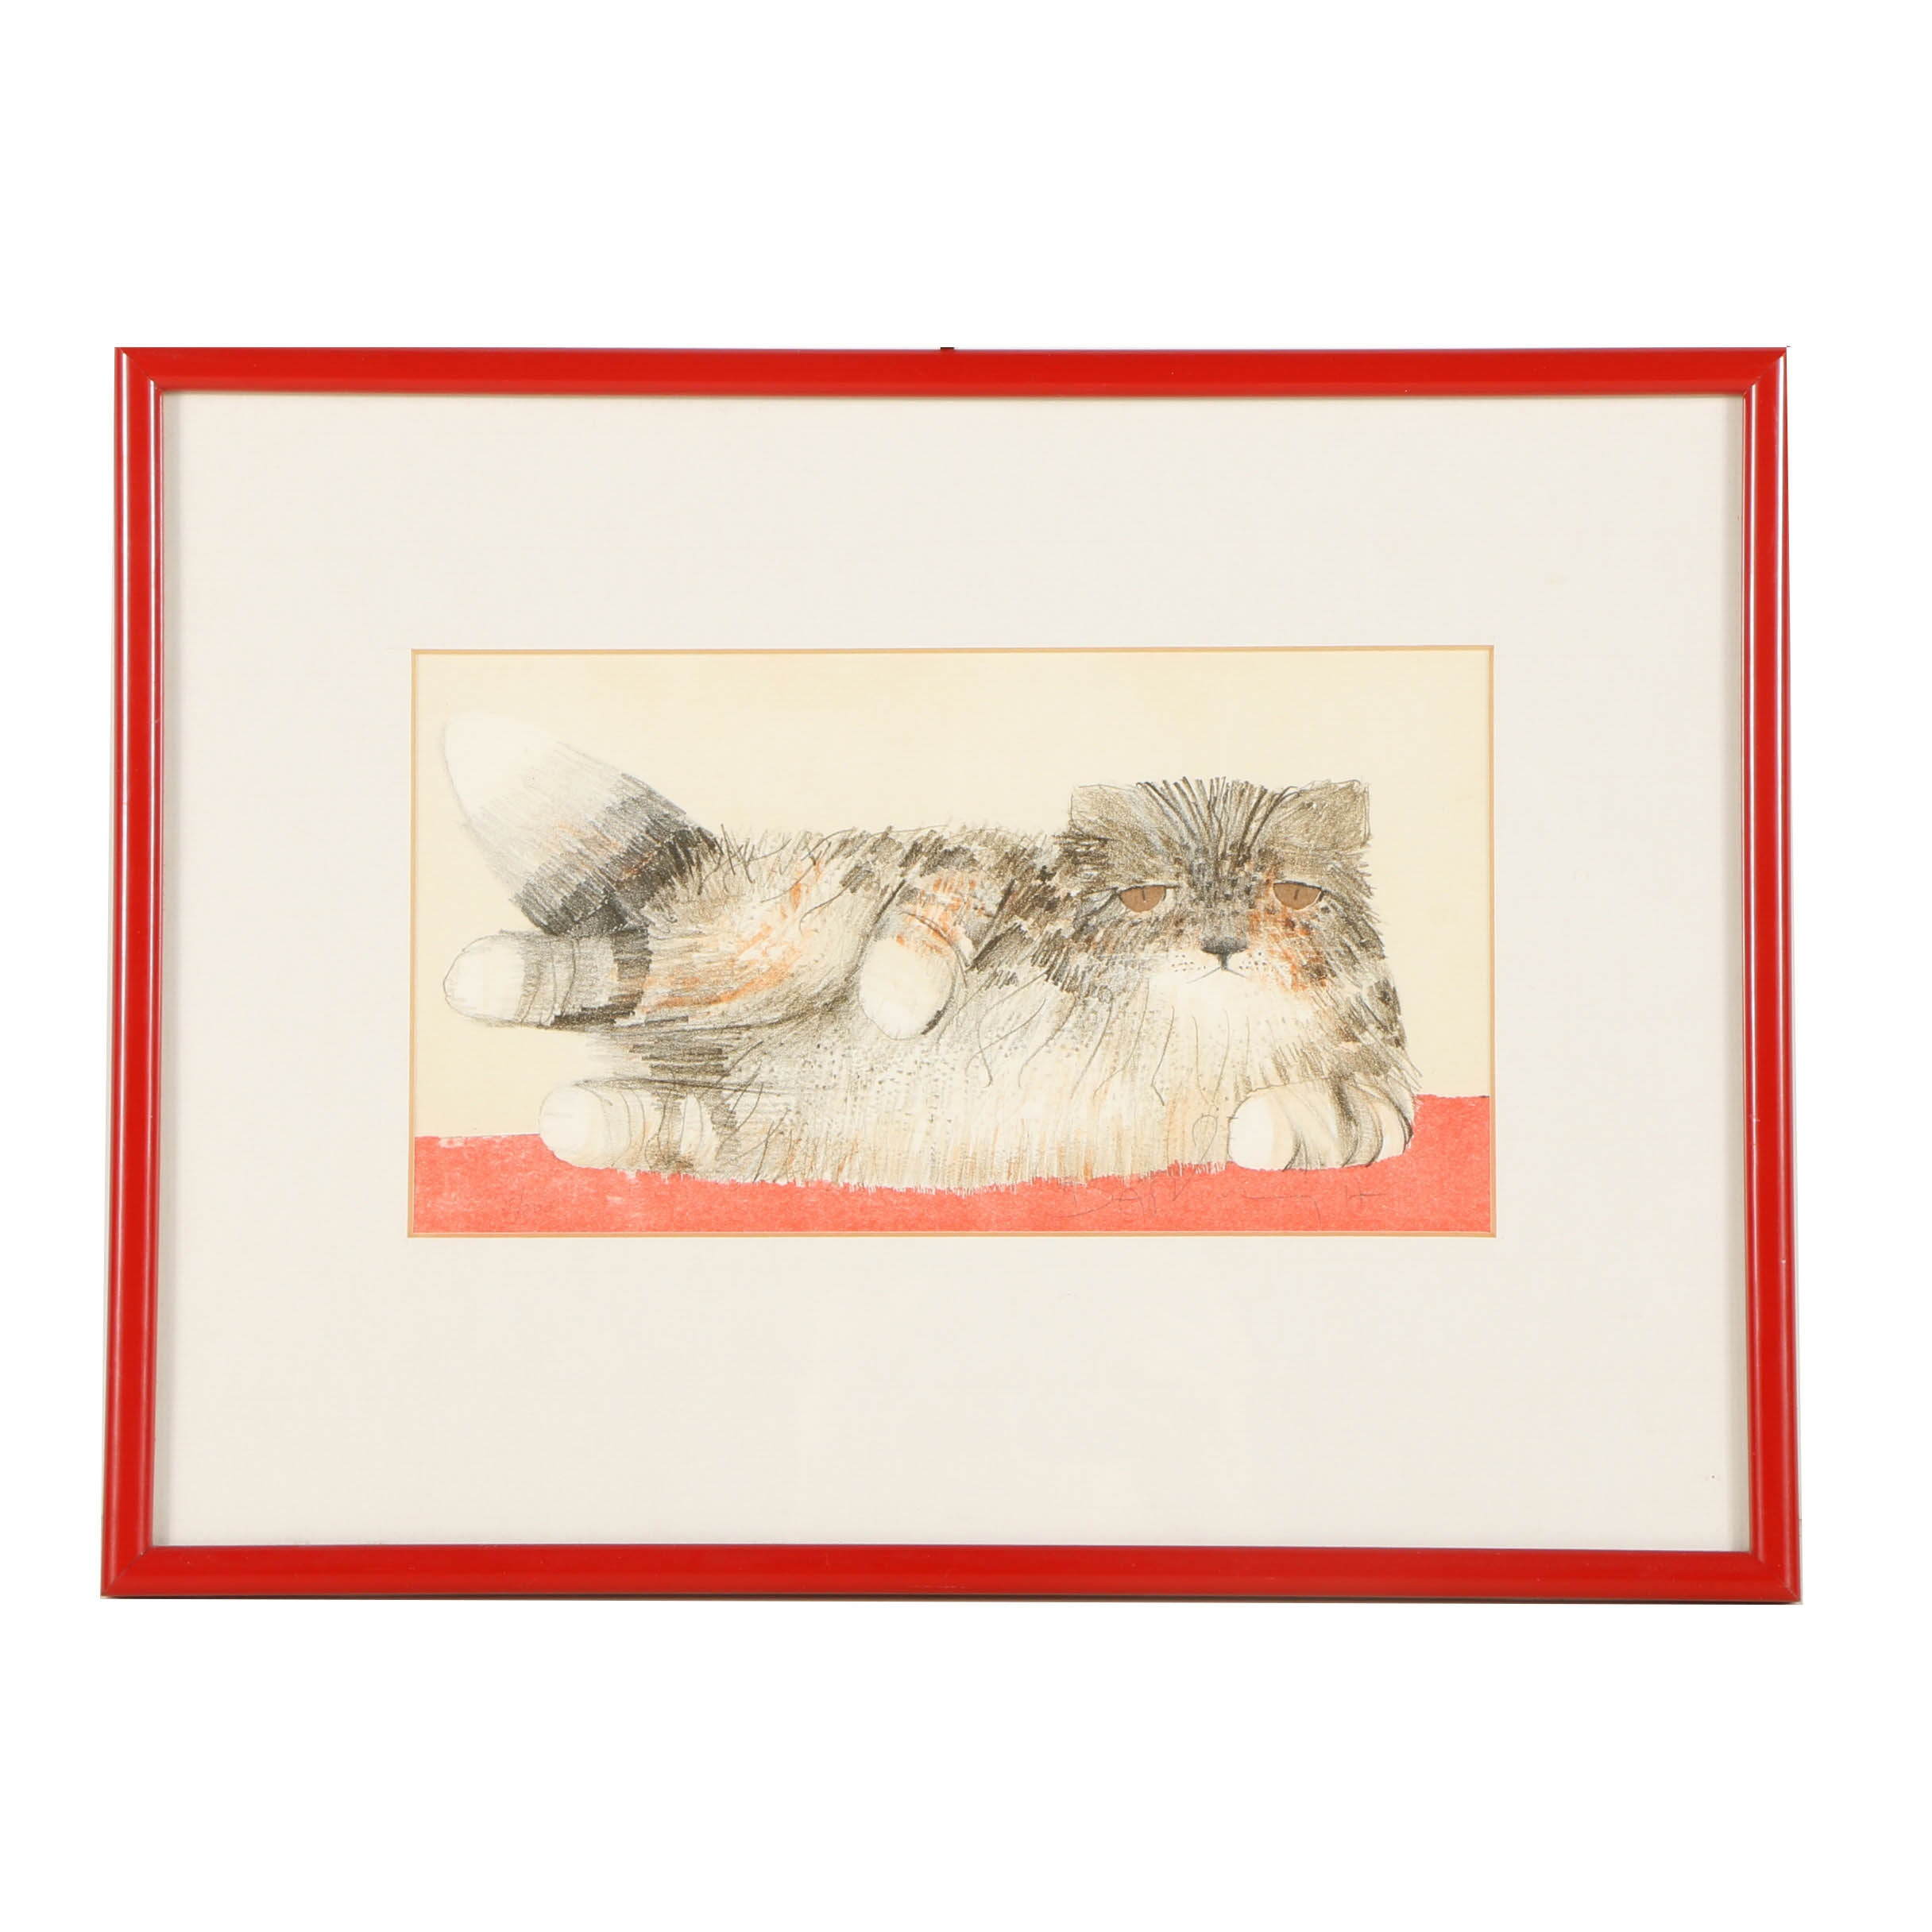 Limited Edition Embellished Lithograph